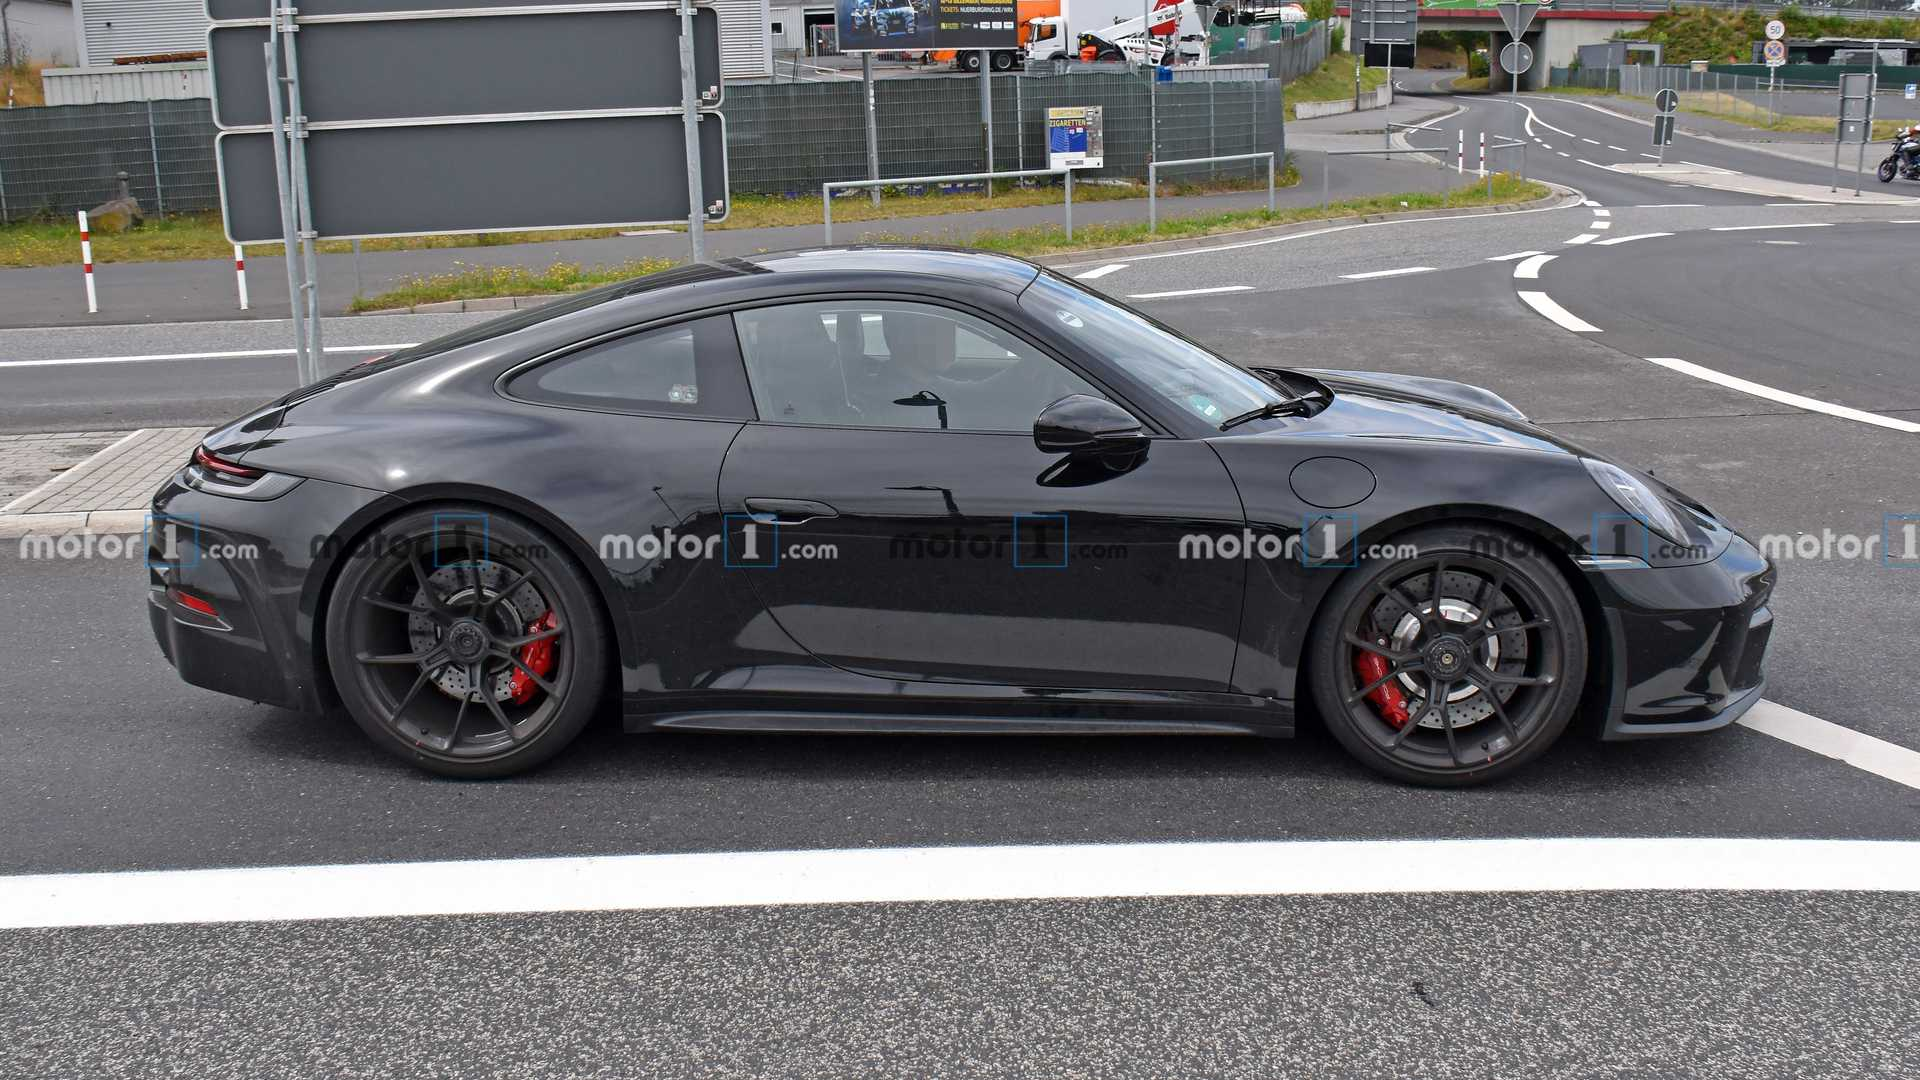 porsche-911-gt3-touring-package-spy-shot-side-view